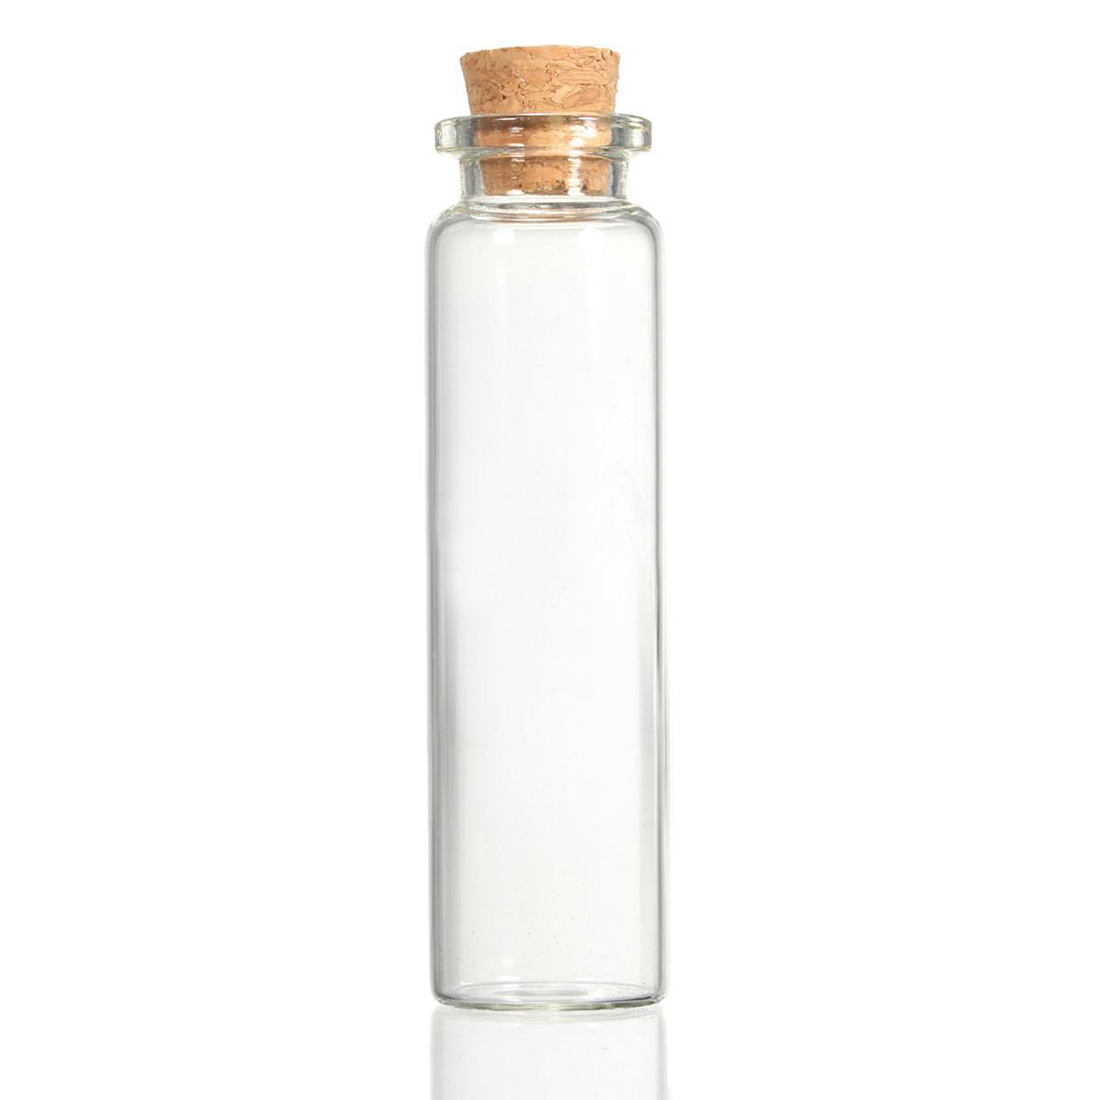 10 Pcs 20ml Mini clear wishing Bottle Message Glass Vial With Cork Home Decor